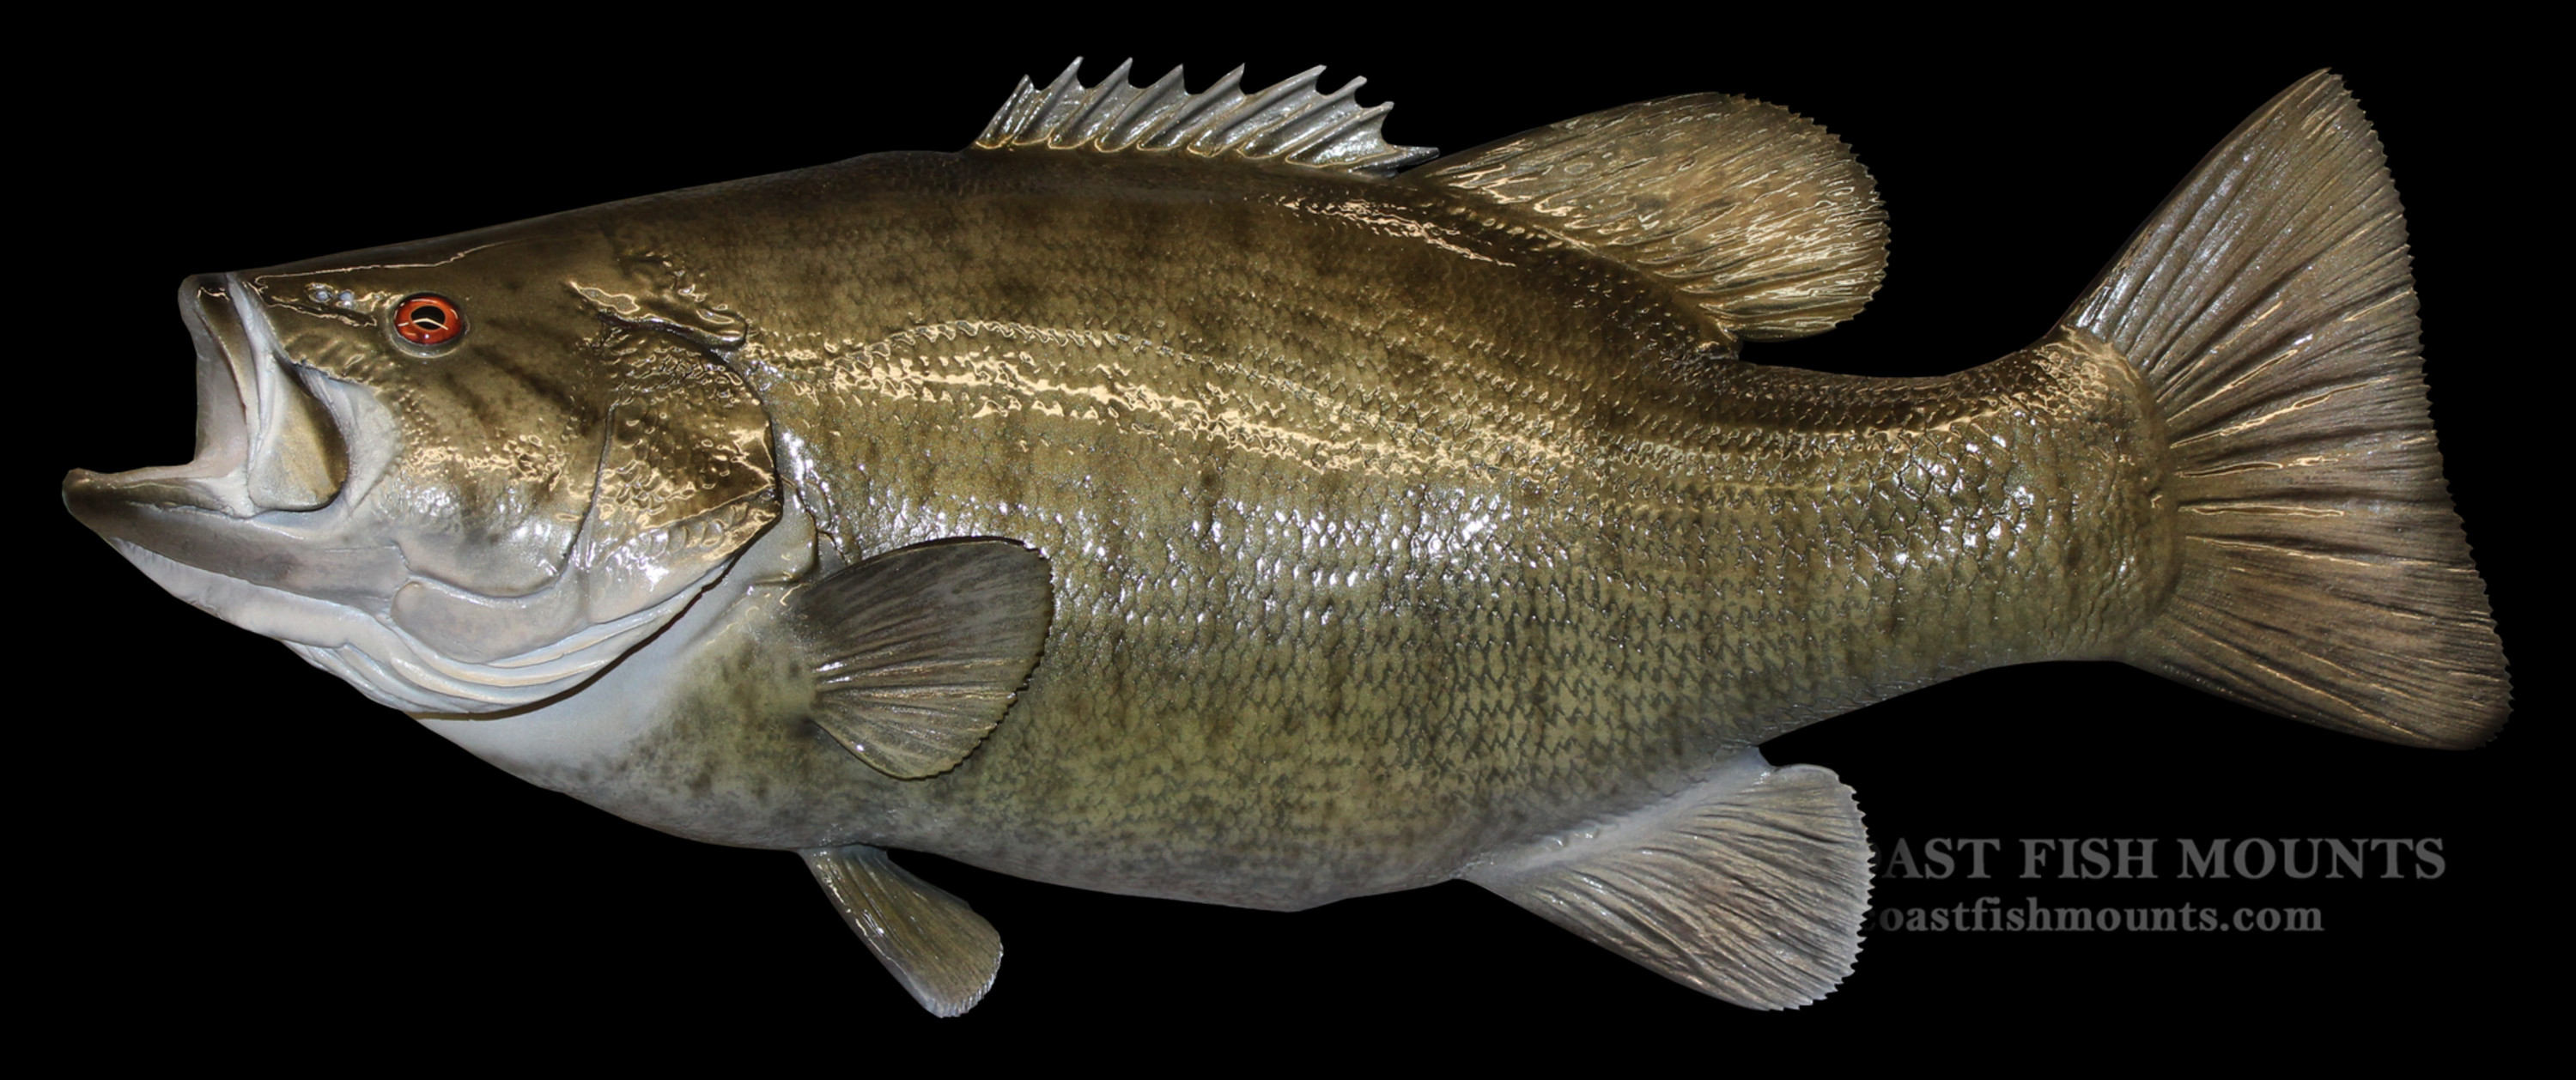 Smallmouth bass fish mount and fish replicas coast to coast for Smallmouth bass fishing